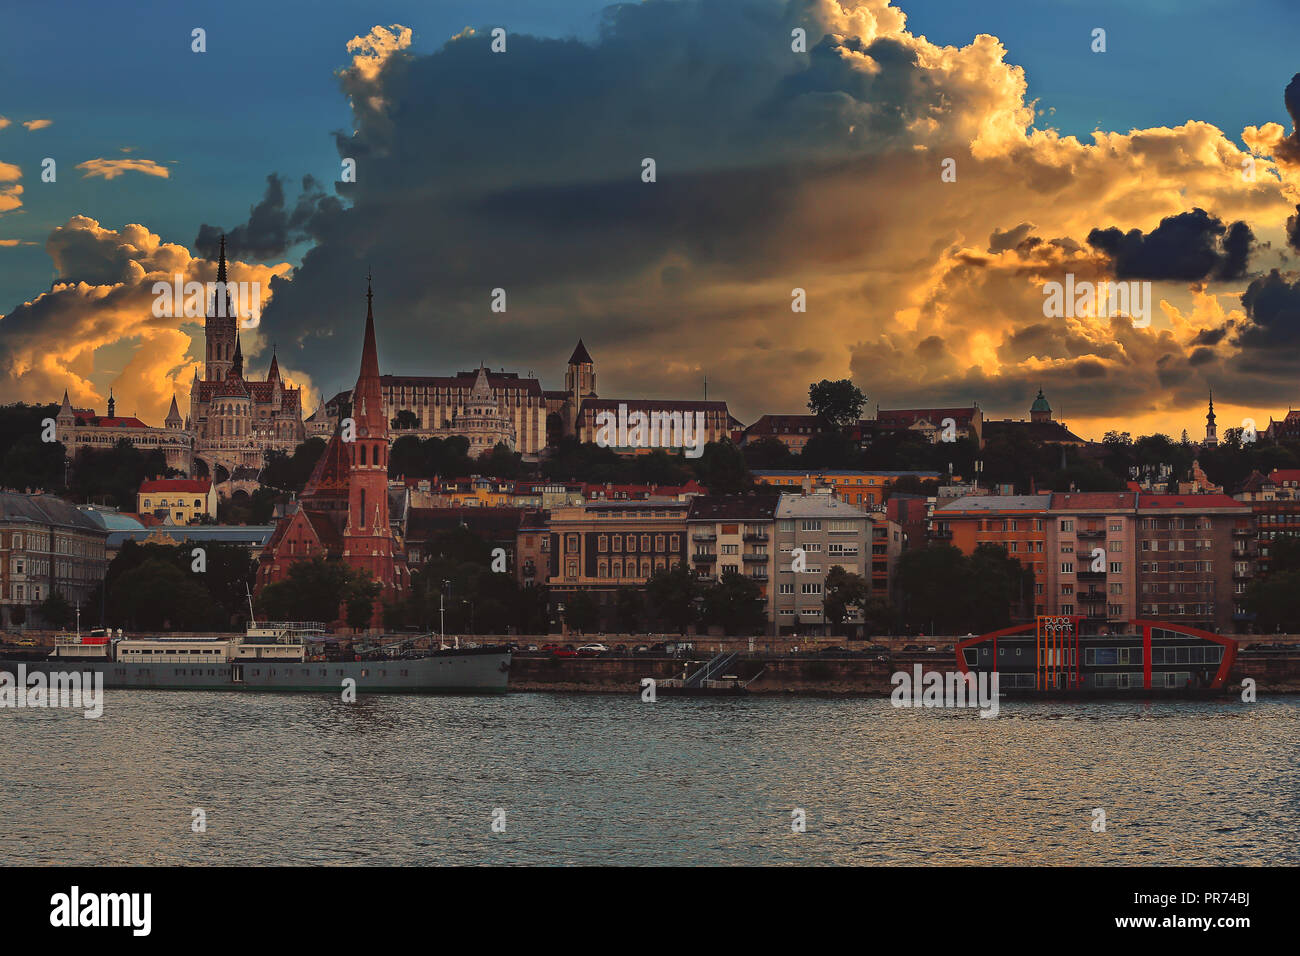 Sunset city skyline of Budapest. Matthias Church, Fisherman's Bastion and other historical buildings on Castle hill. View from Danube - Stock Image